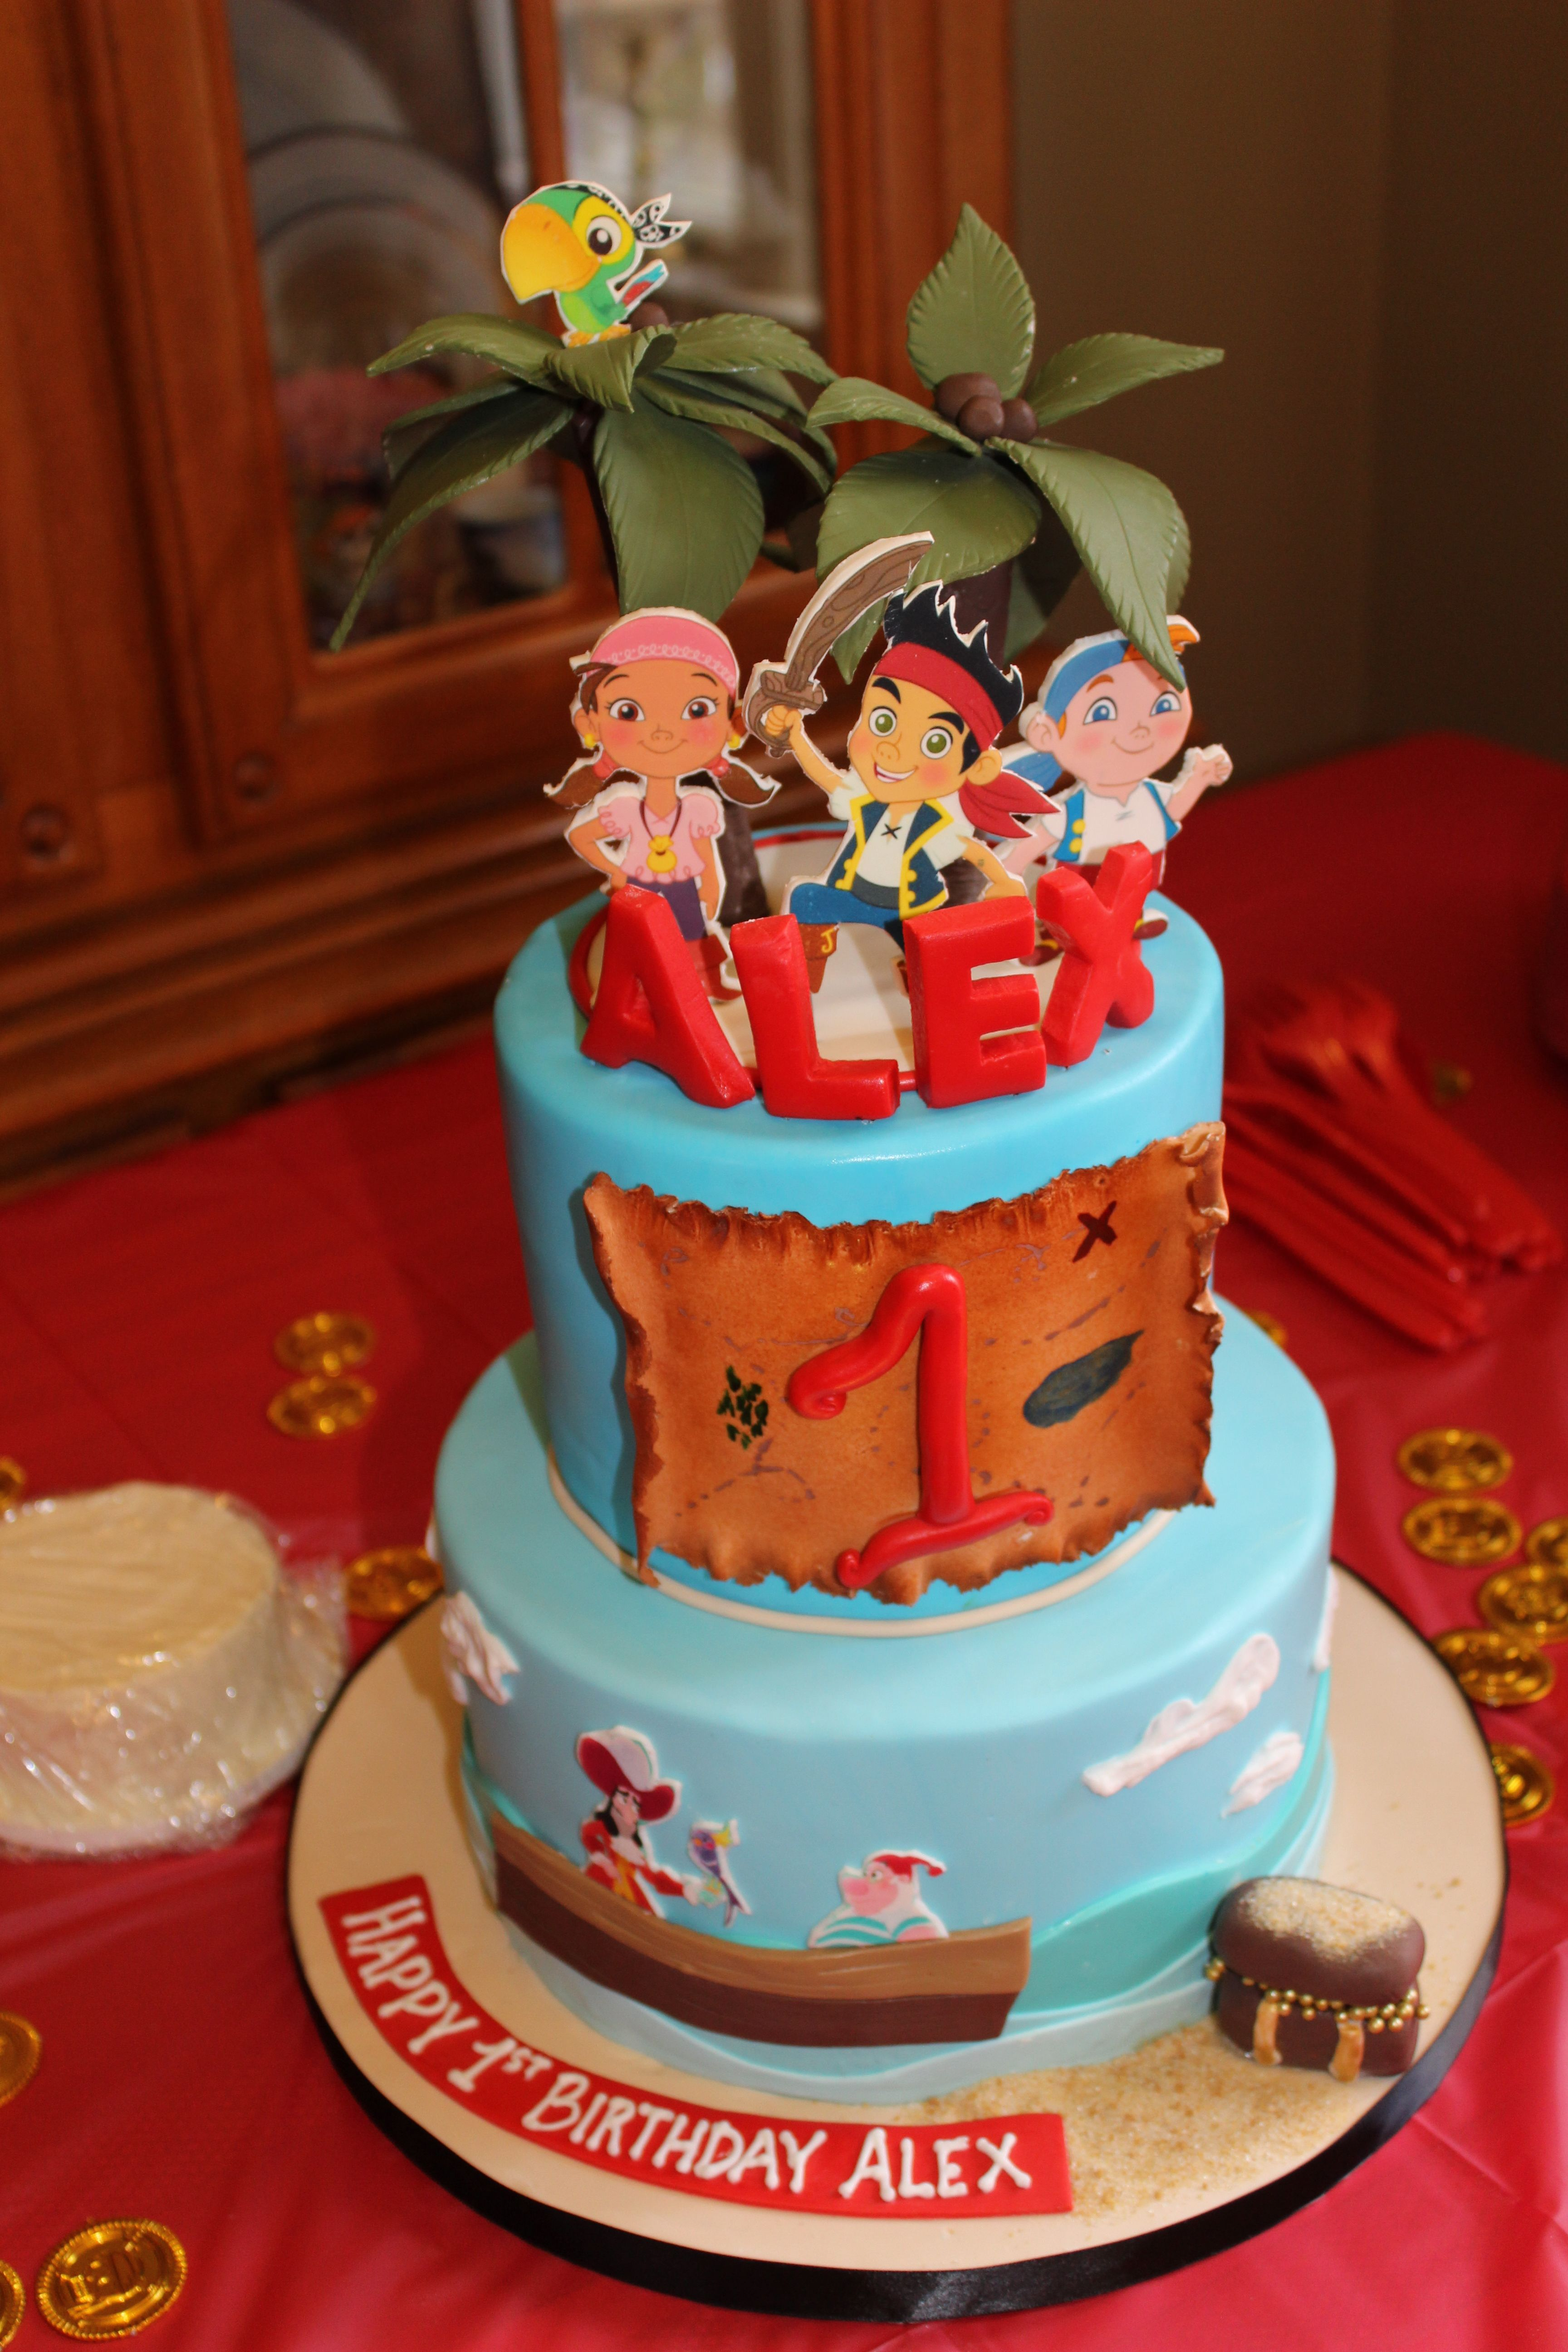 Alexs Jake And The Neverland Pirates Cake Courtesy Of City Girl